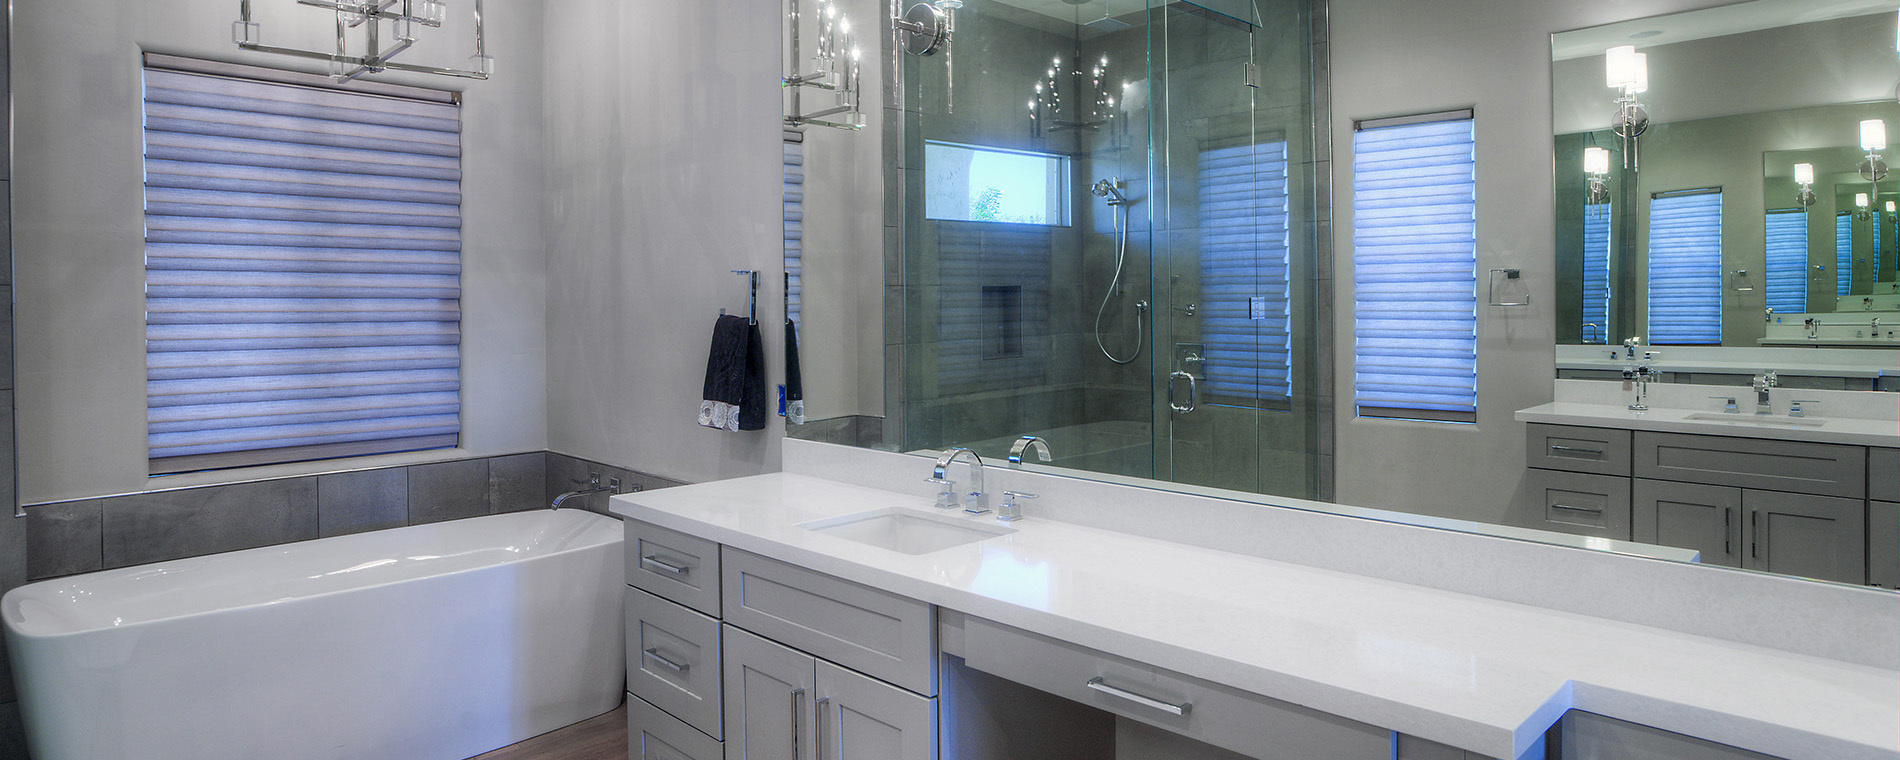 bathroom with tiled stand alone shower reflected in mirror